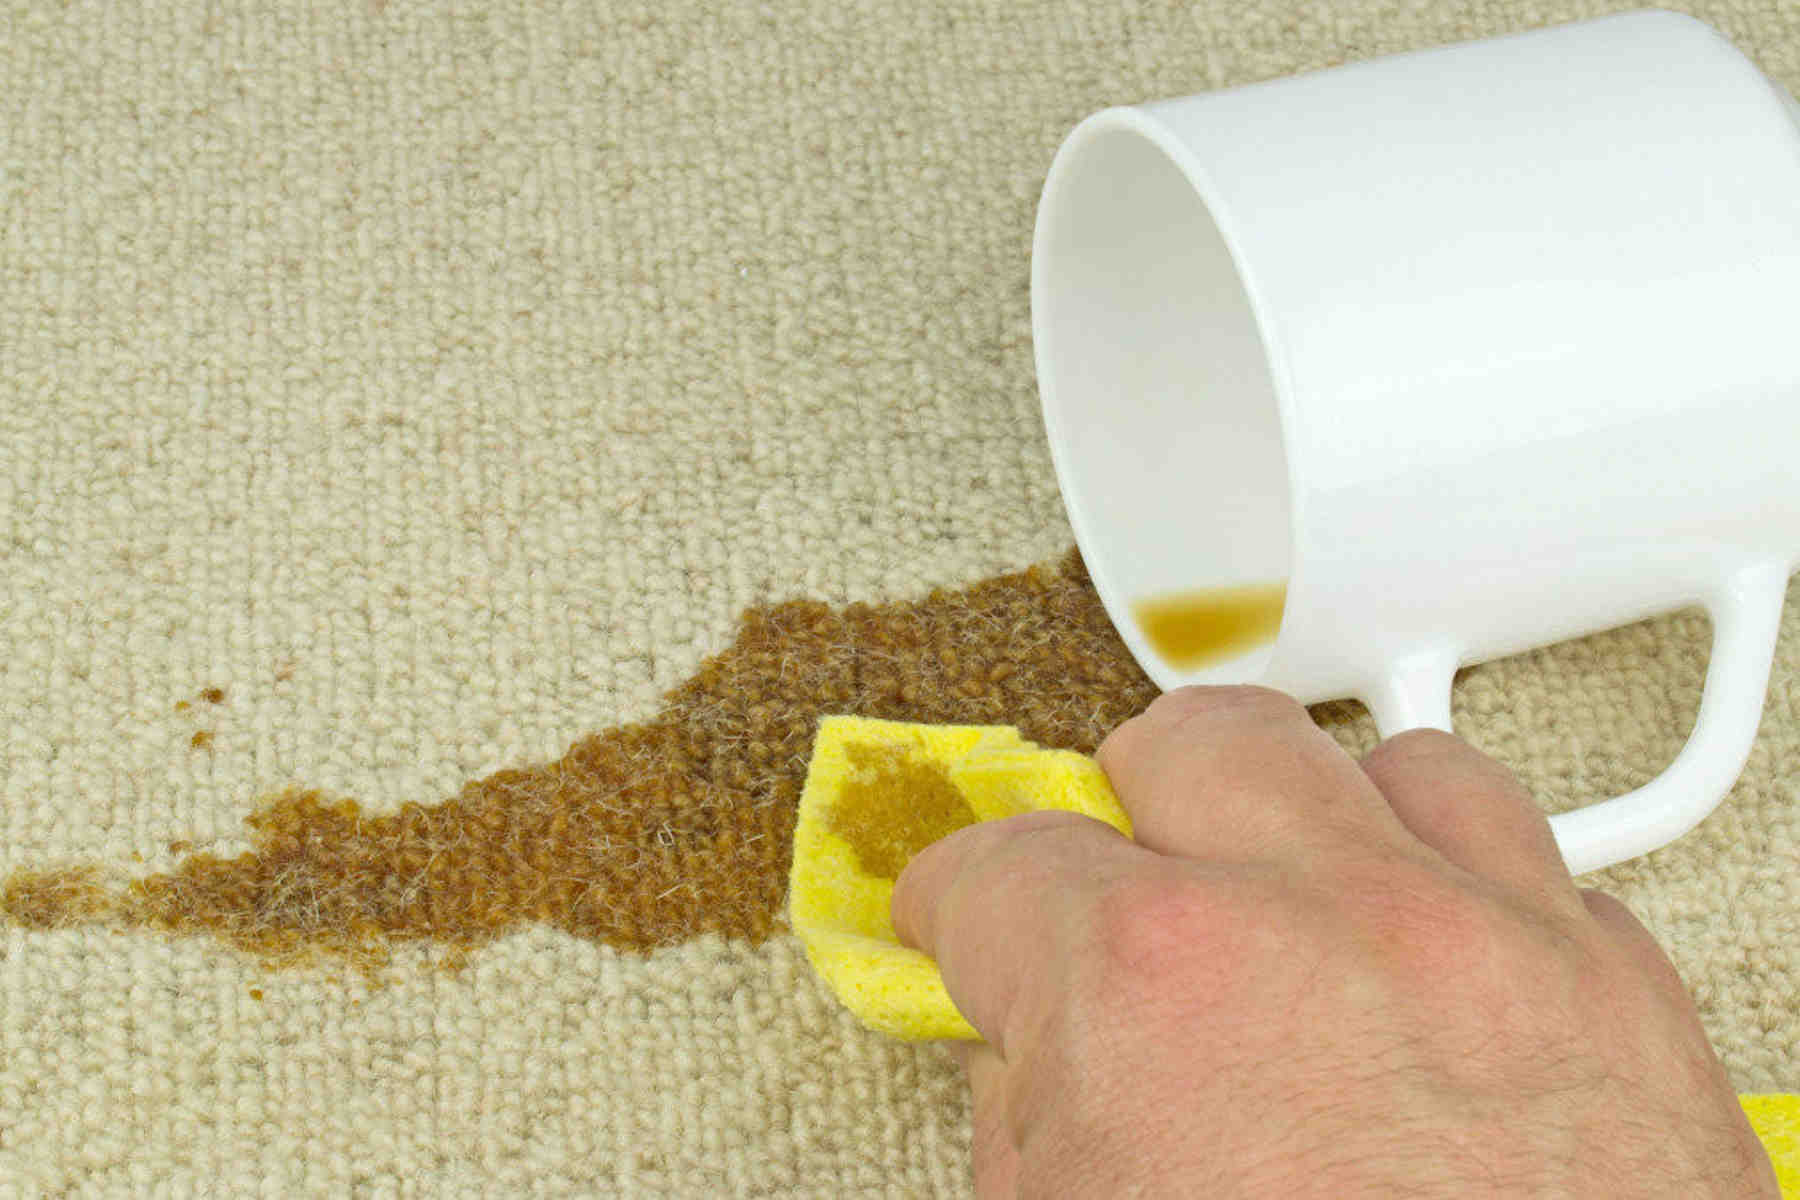 Spot-Stain Removal - Blot as much liquid as possible